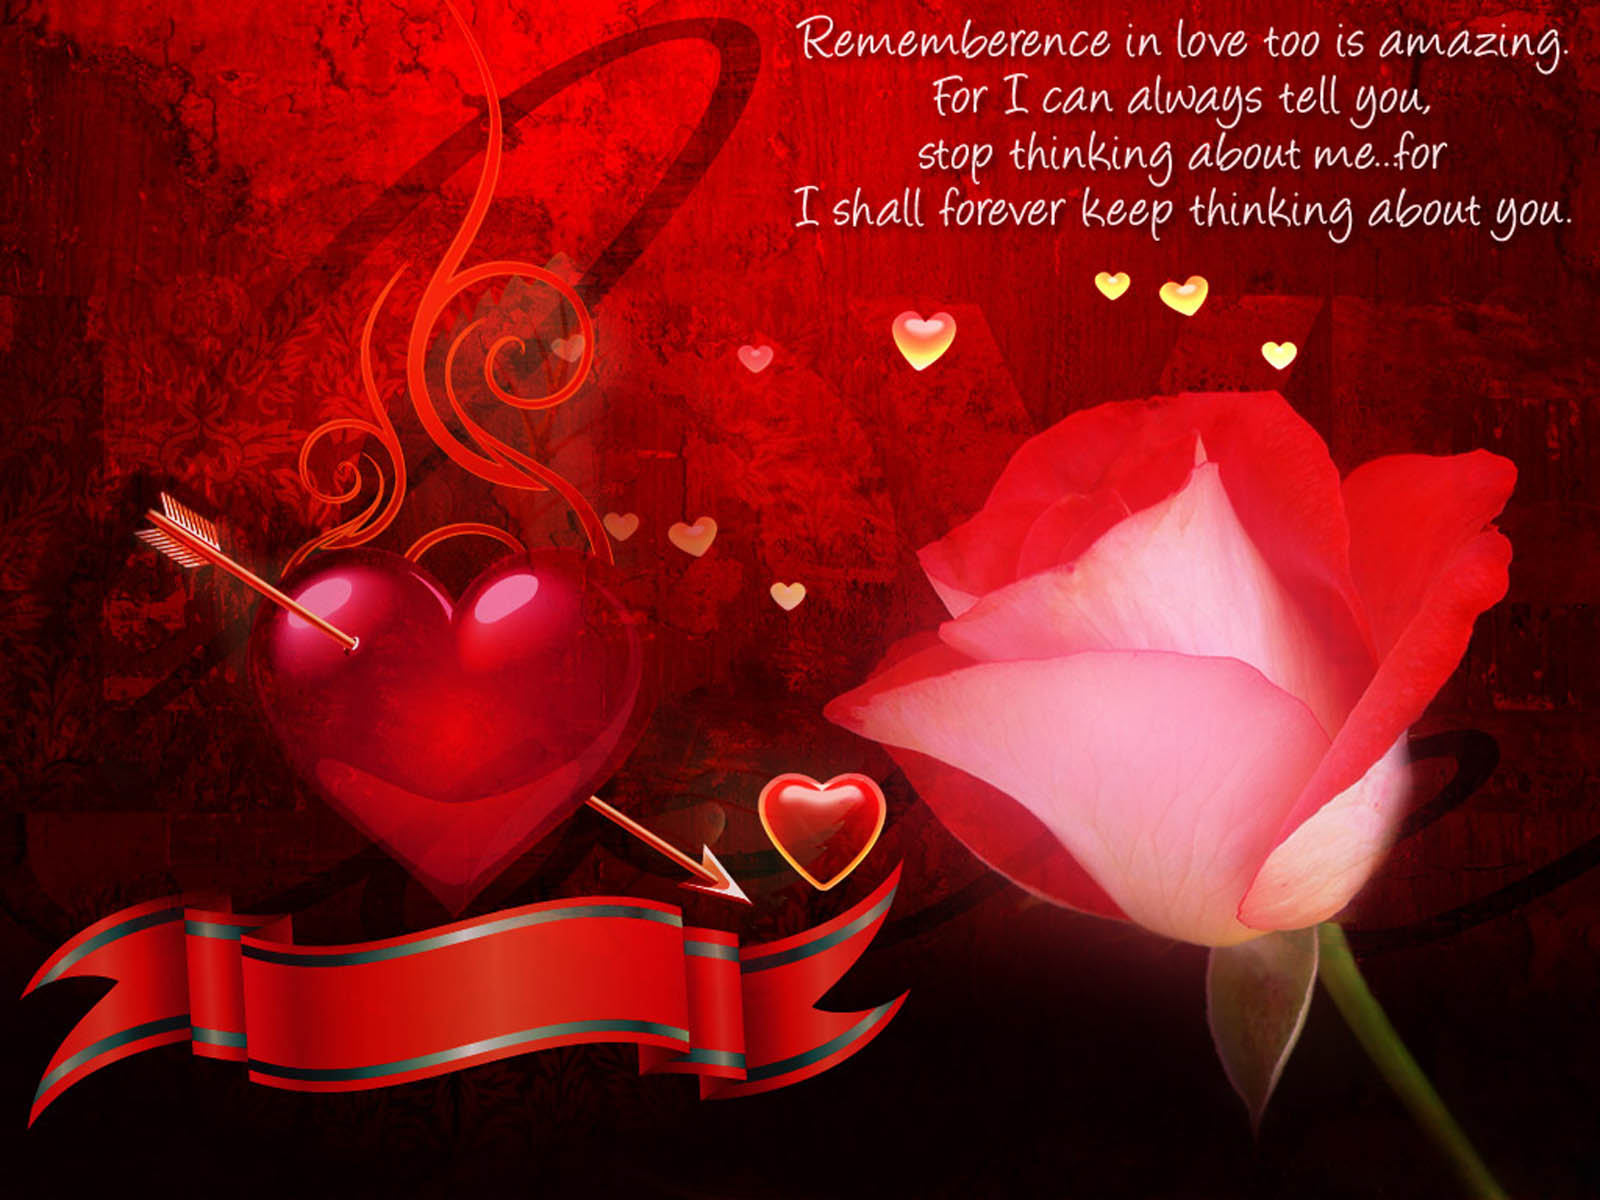 Live Wallpaper Of Love For Pc : XS Wallpapers HD: Love Quotes Desktop Wallpapers